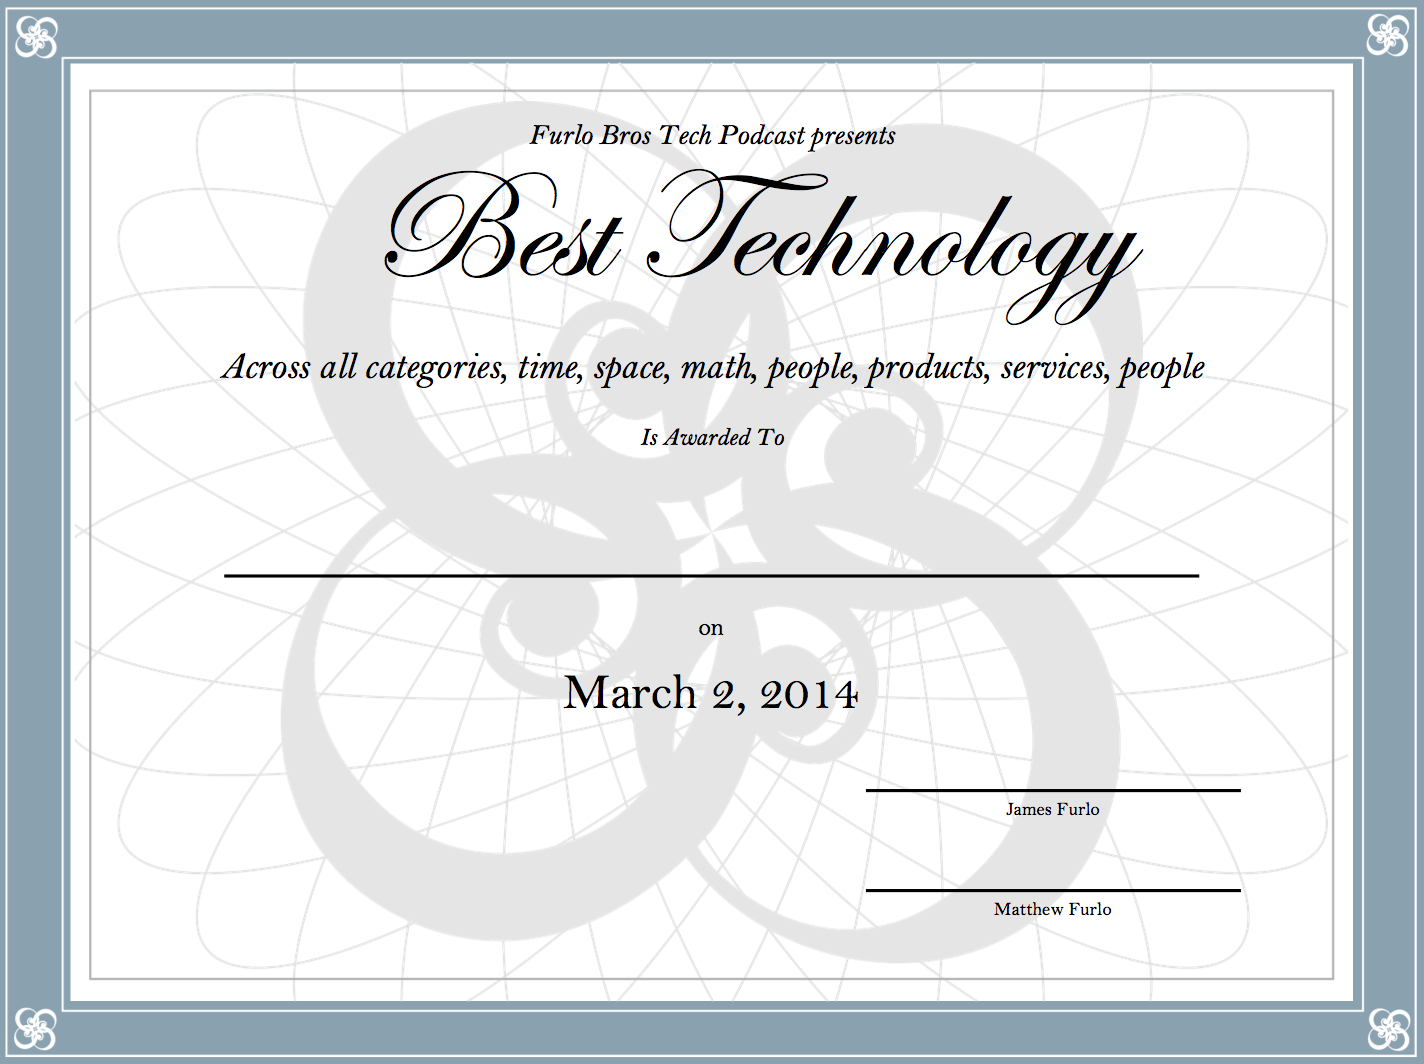 Best Techonology Award